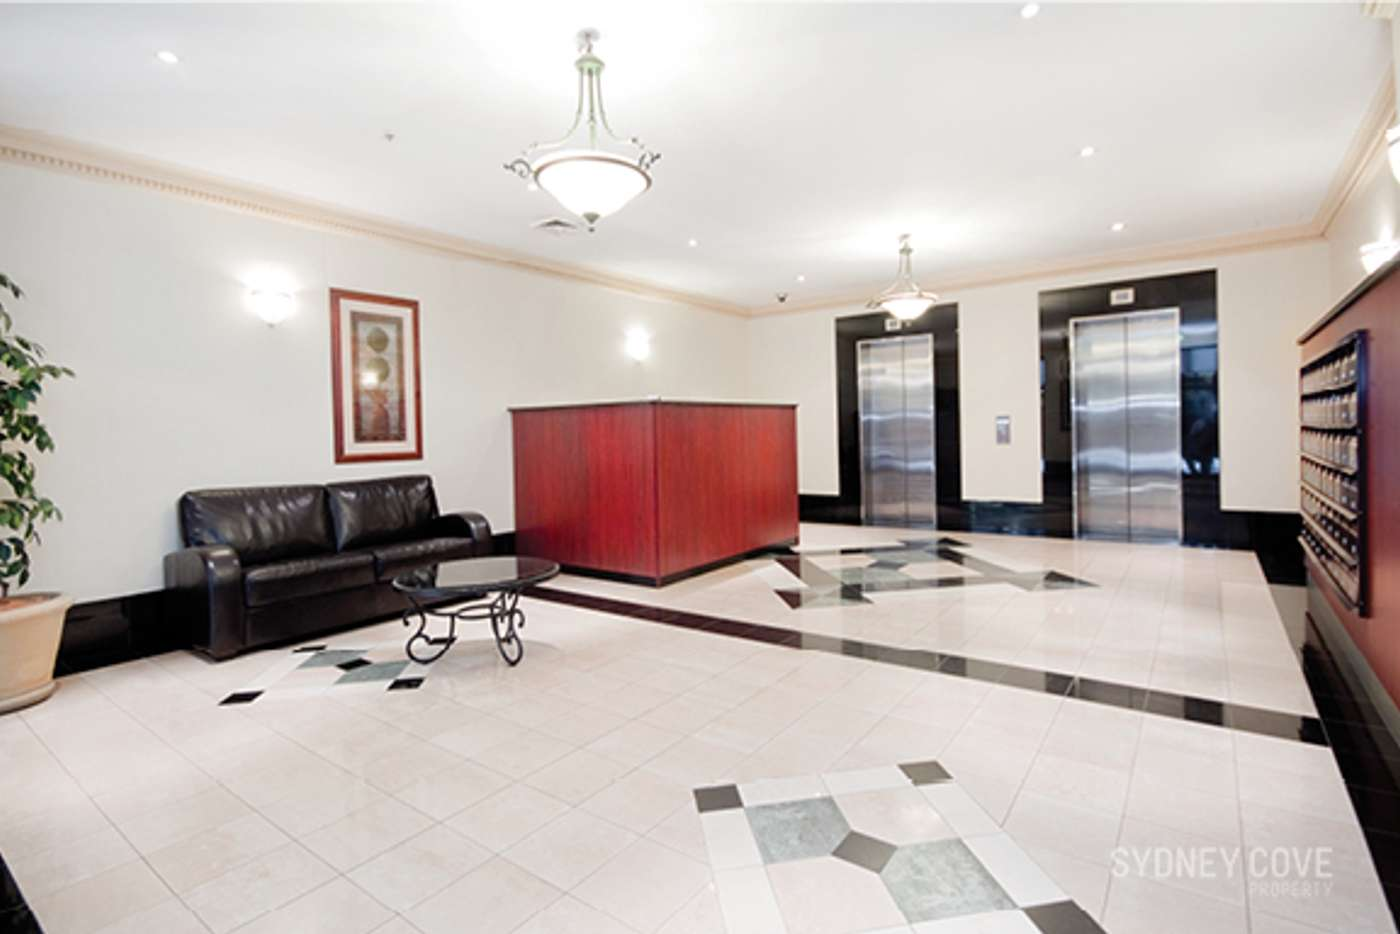 Sixth view of Homely apartment listing, 1 Hosking Pl, Sydney NSW 2000